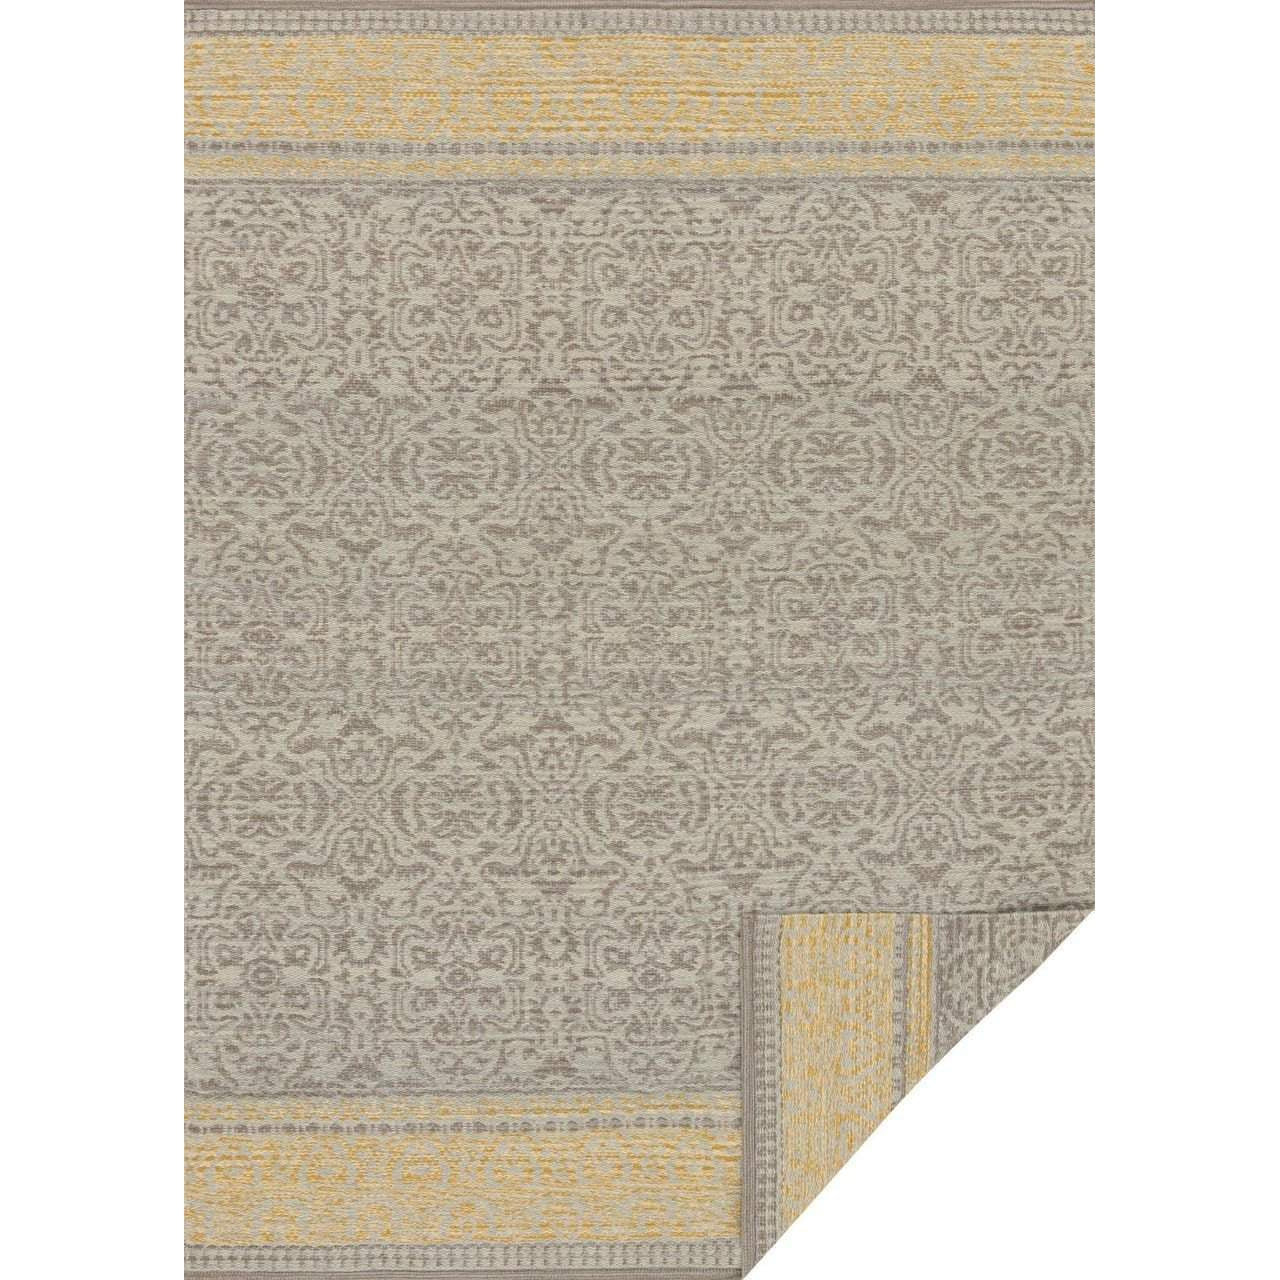 Joanna Gaines of Magnolia Home Emmie Kay Rug Collection - Grey / Maize